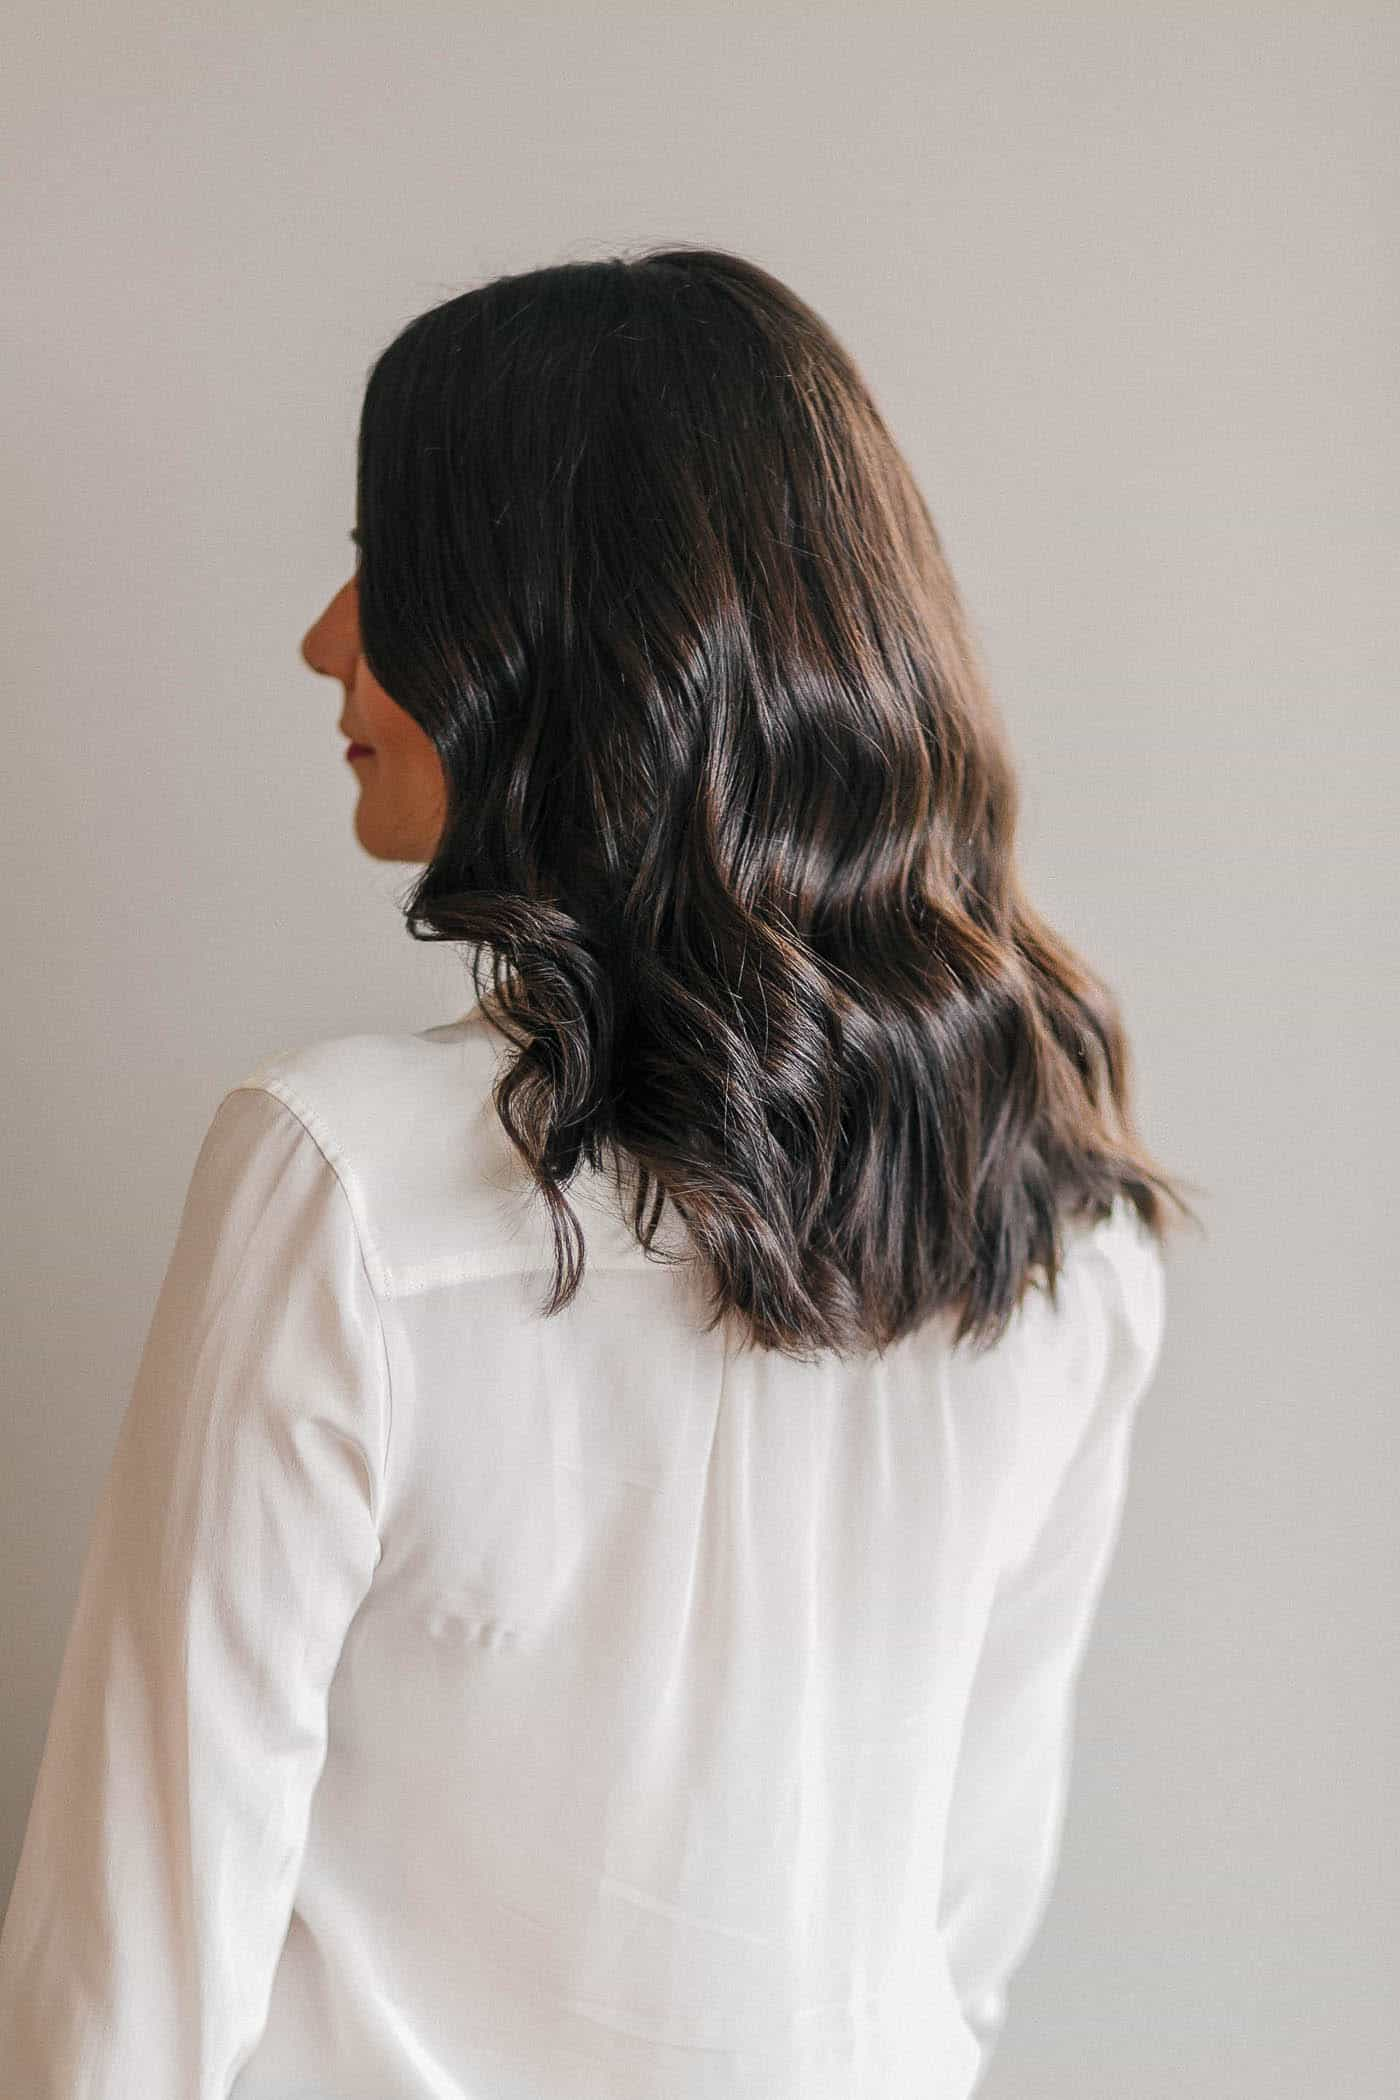 Wavy hair tutorial for medium length hair my style vita youve probably well hopefully read my wavy hair tutorial from a few years ago here its my most popular post on my blog believe it or not urmus Gallery